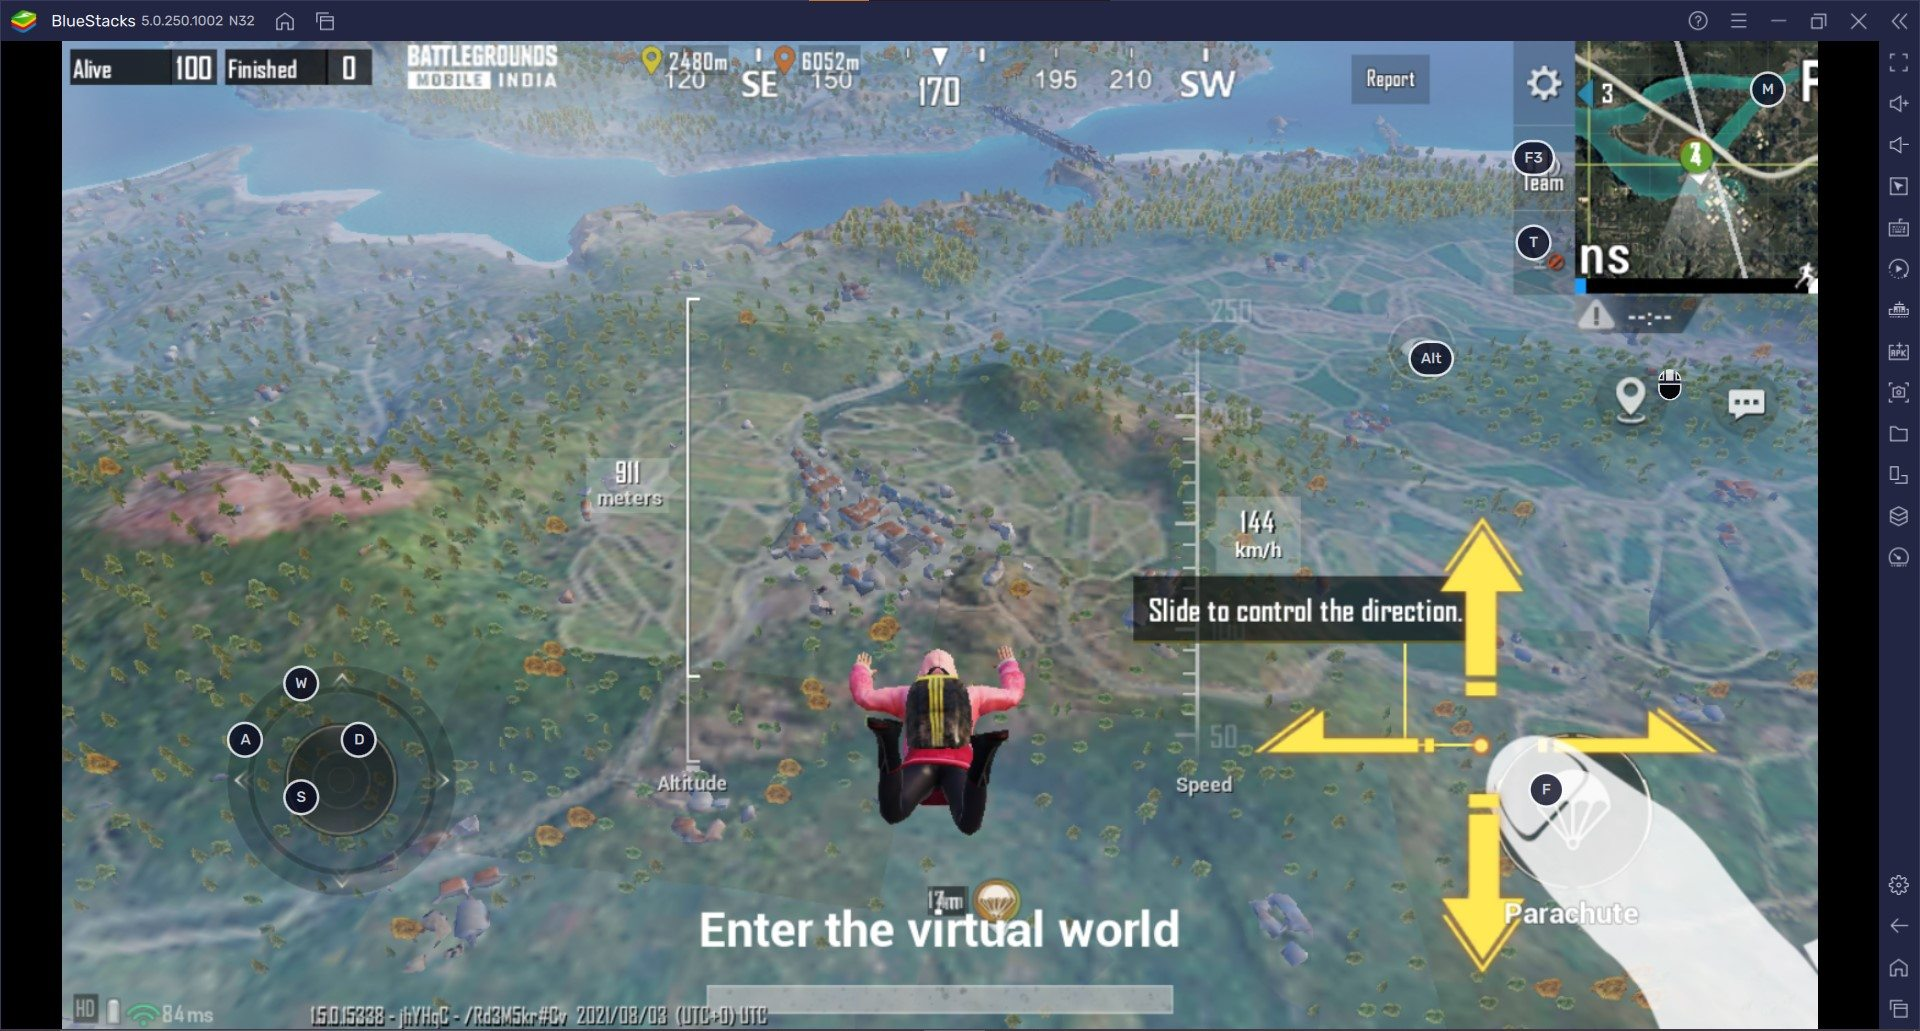 BlueStacks Guide to Differences Between PUBG Mobile and BGMI